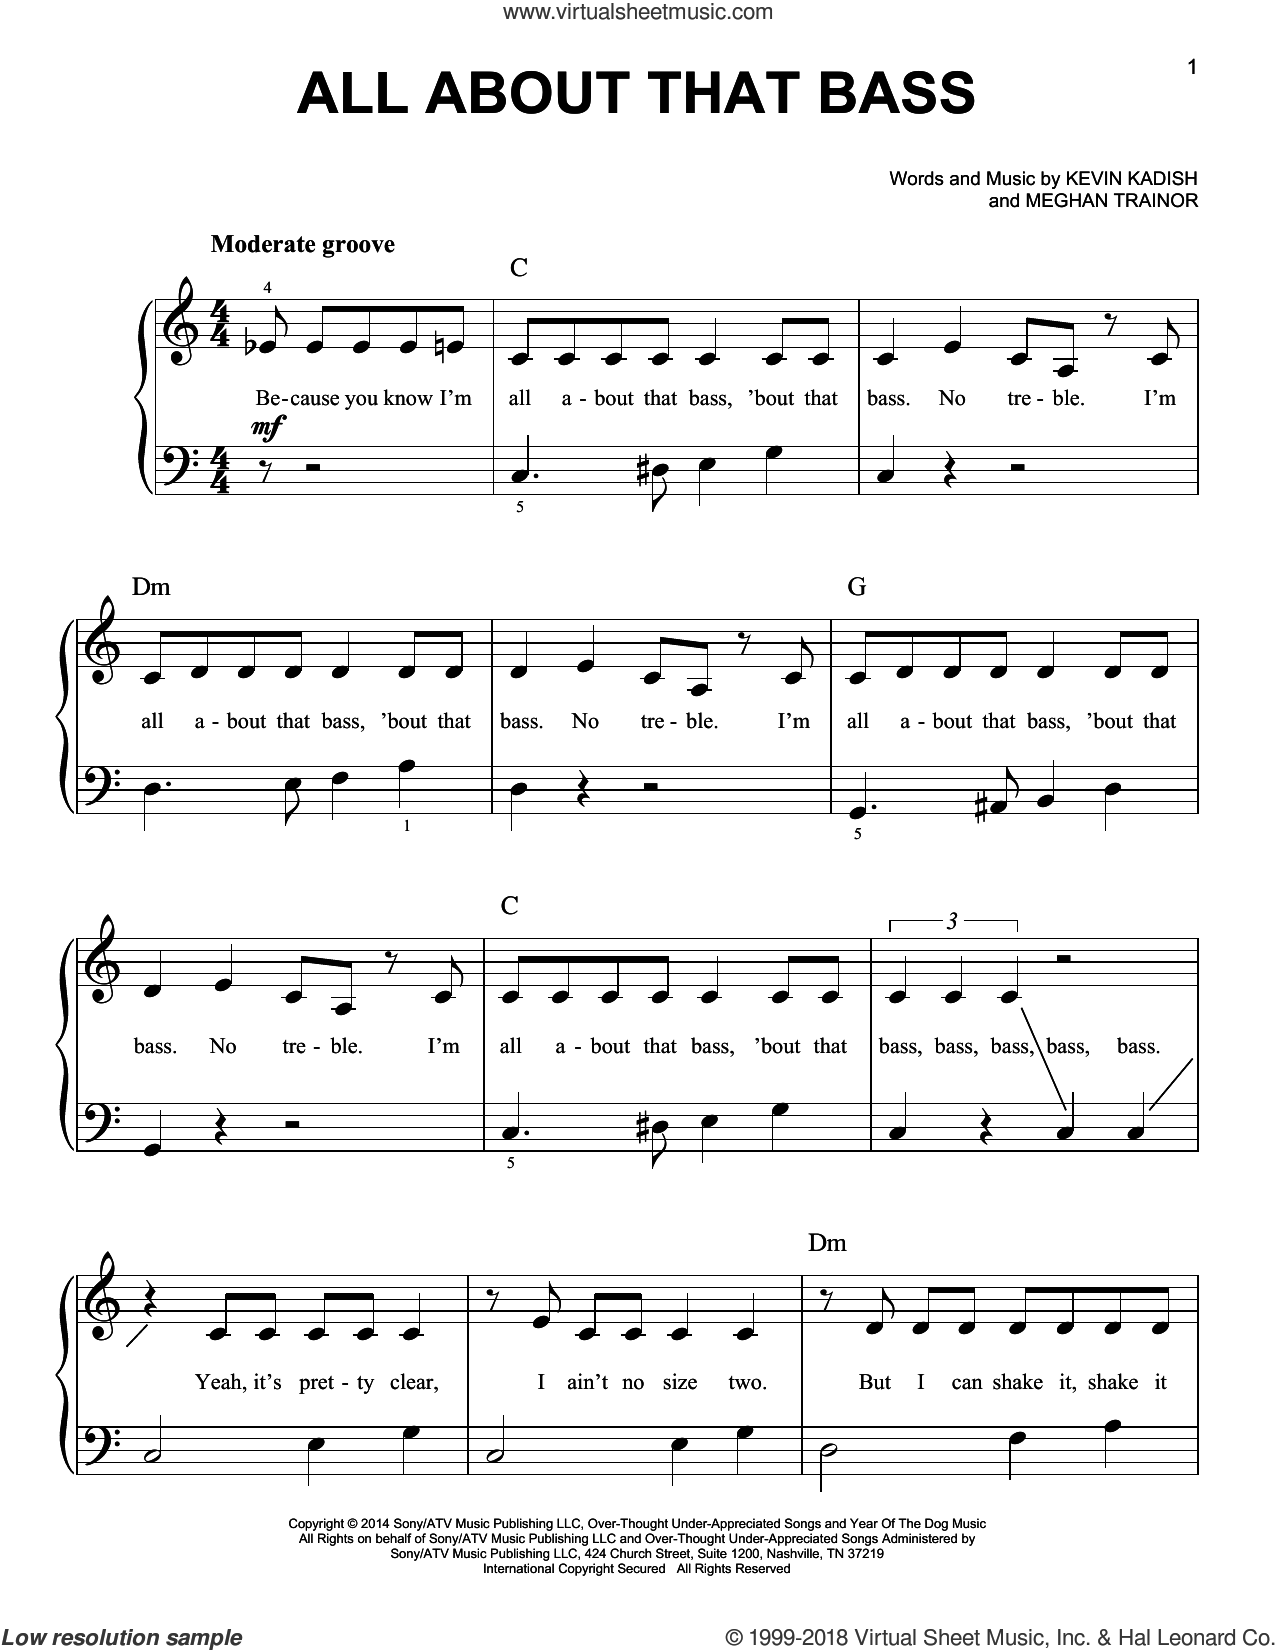 All About That Bass sheet music for piano solo by Meghan Trainer, Meghan Trainor and Kevin Kadish. Score Image Preview.